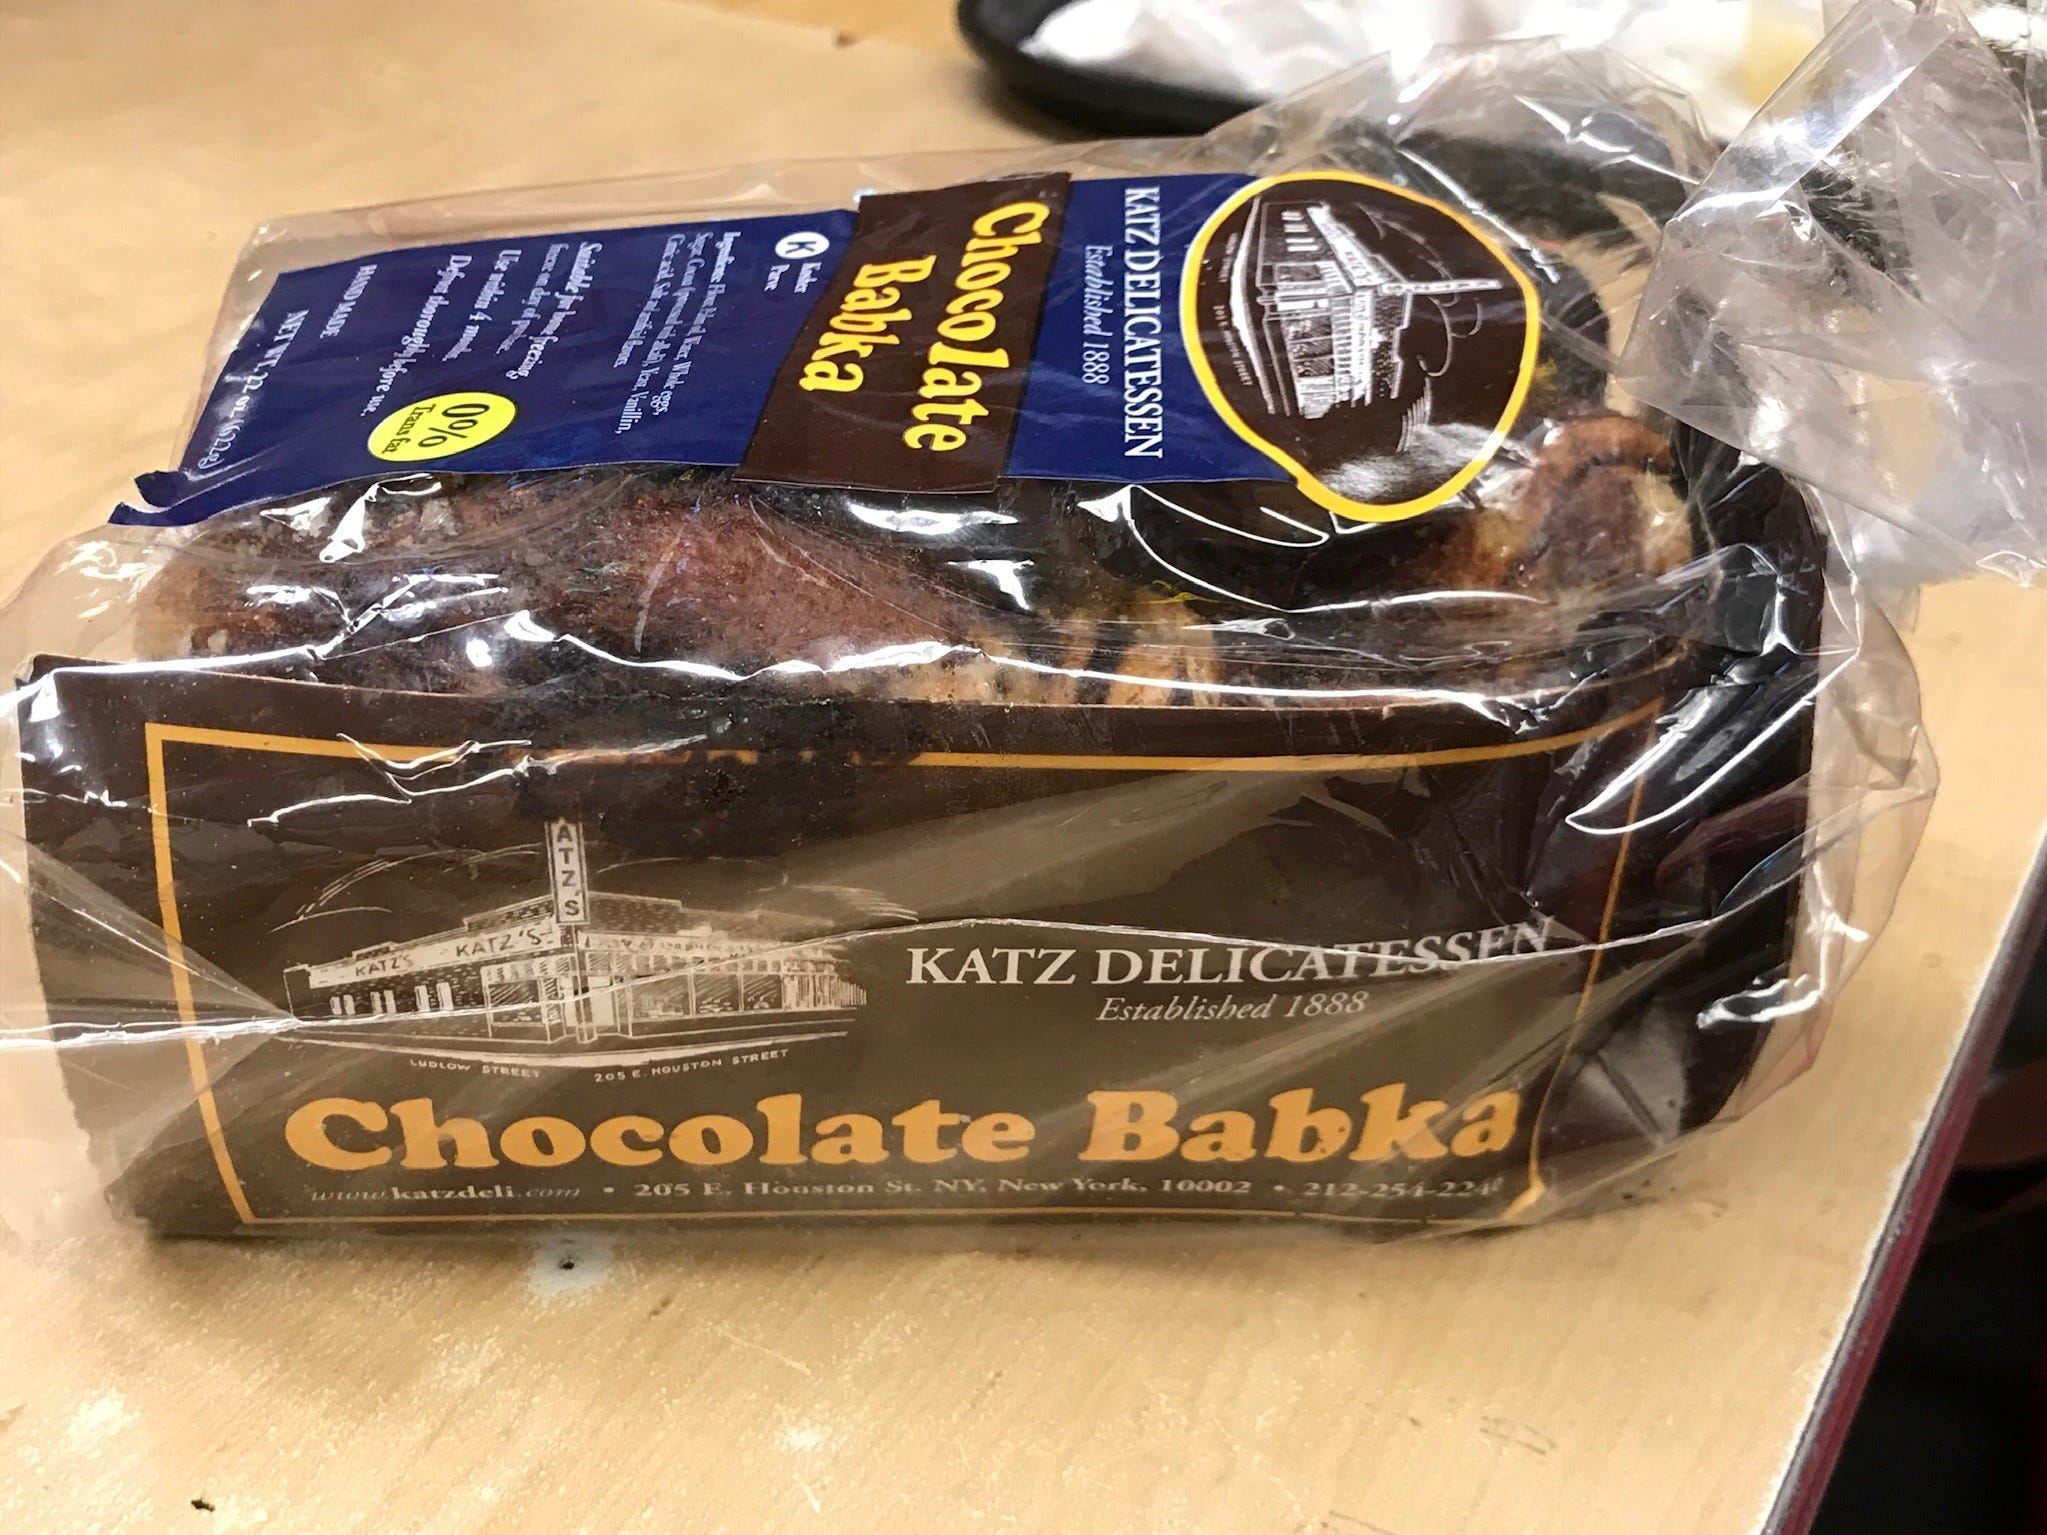 The superlative chocolate babka (also available in cinnamon) is sold in whole loaves to go, but you can enjoy it right here.